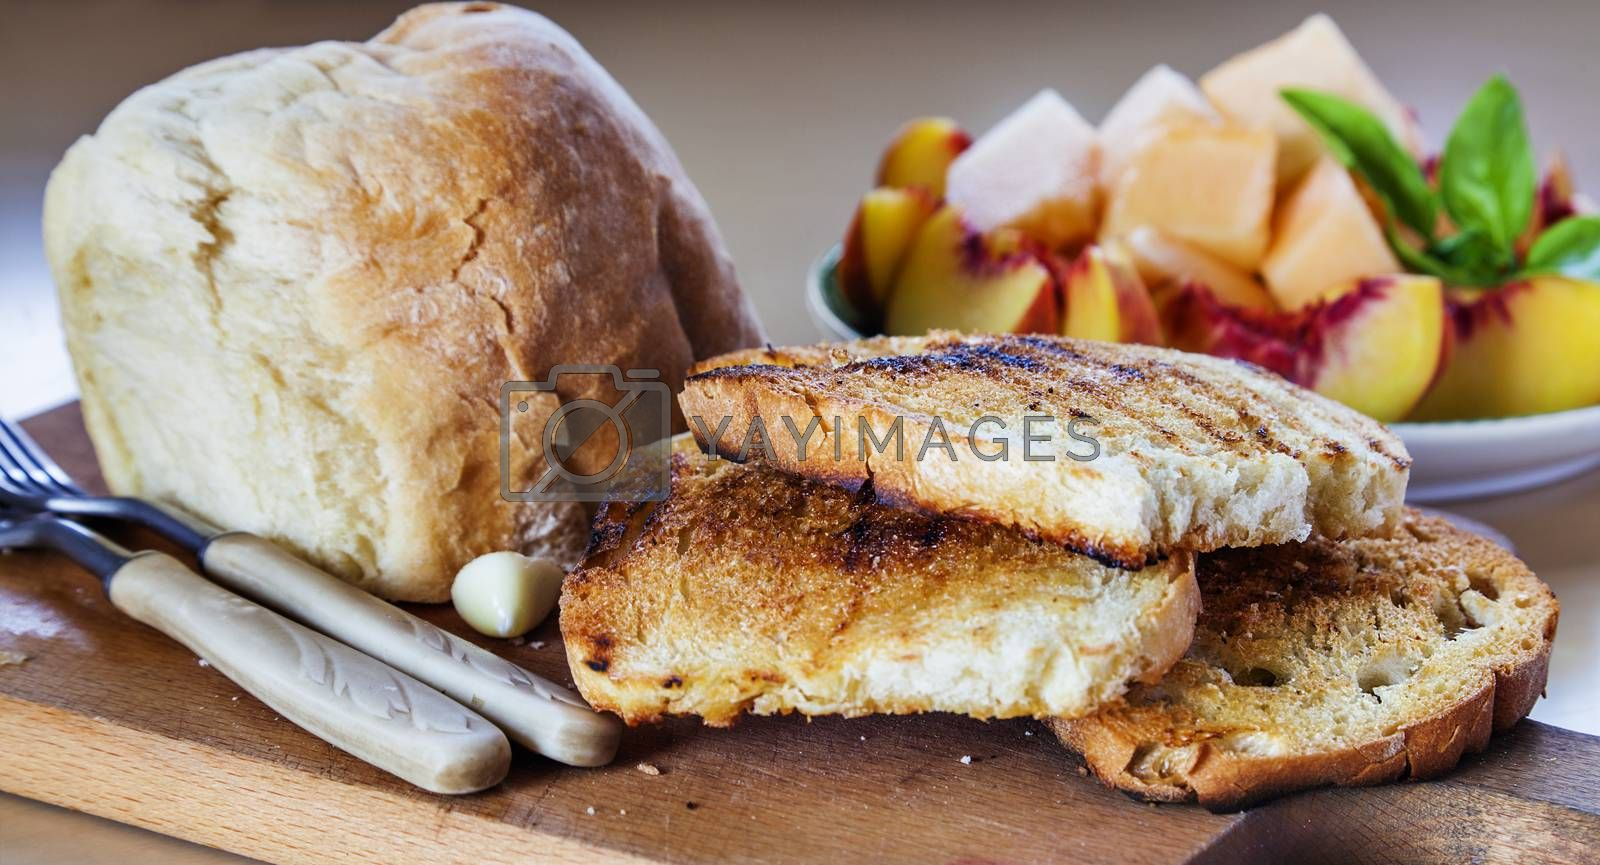 Three roasted slices of bread with garlic, fresh bread and a plate of sliced fruits behind.